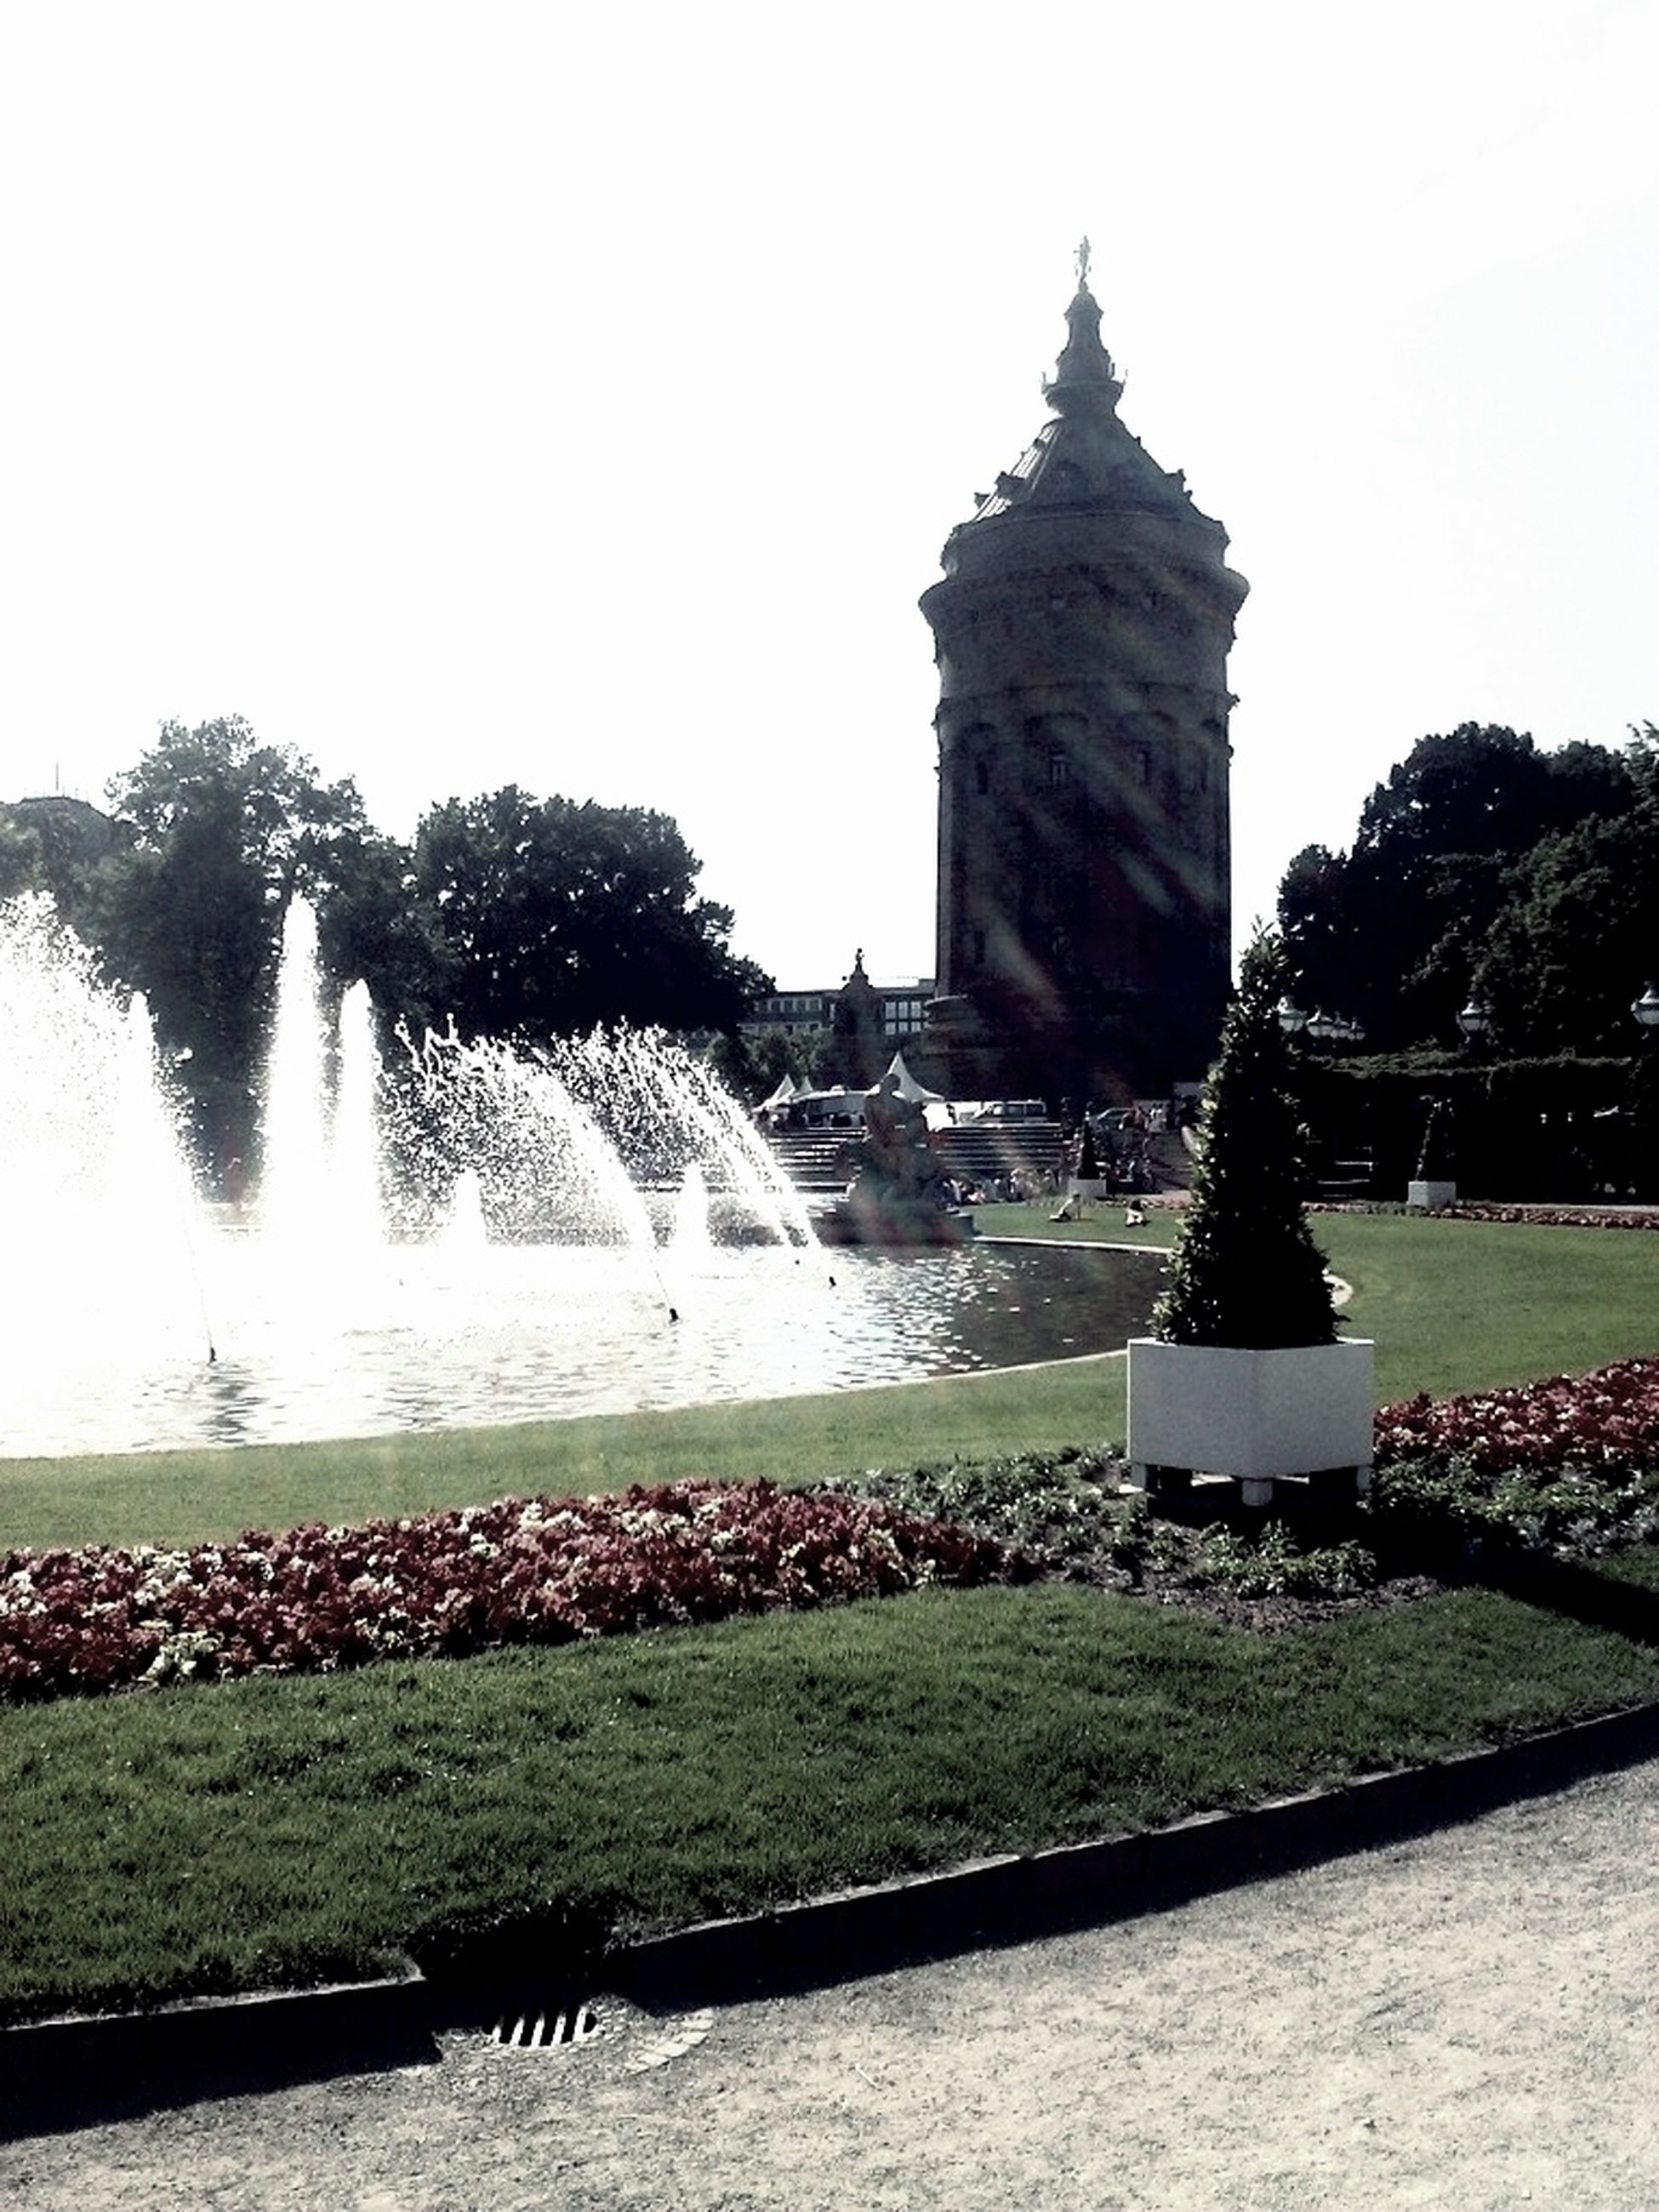 water, fountain, built structure, tree, architecture, building exterior, clear sky, travel destinations, grass, sky, pond, park - man made space, nature, famous place, plant, tourism, spraying, beauty in nature, growth, incidental people